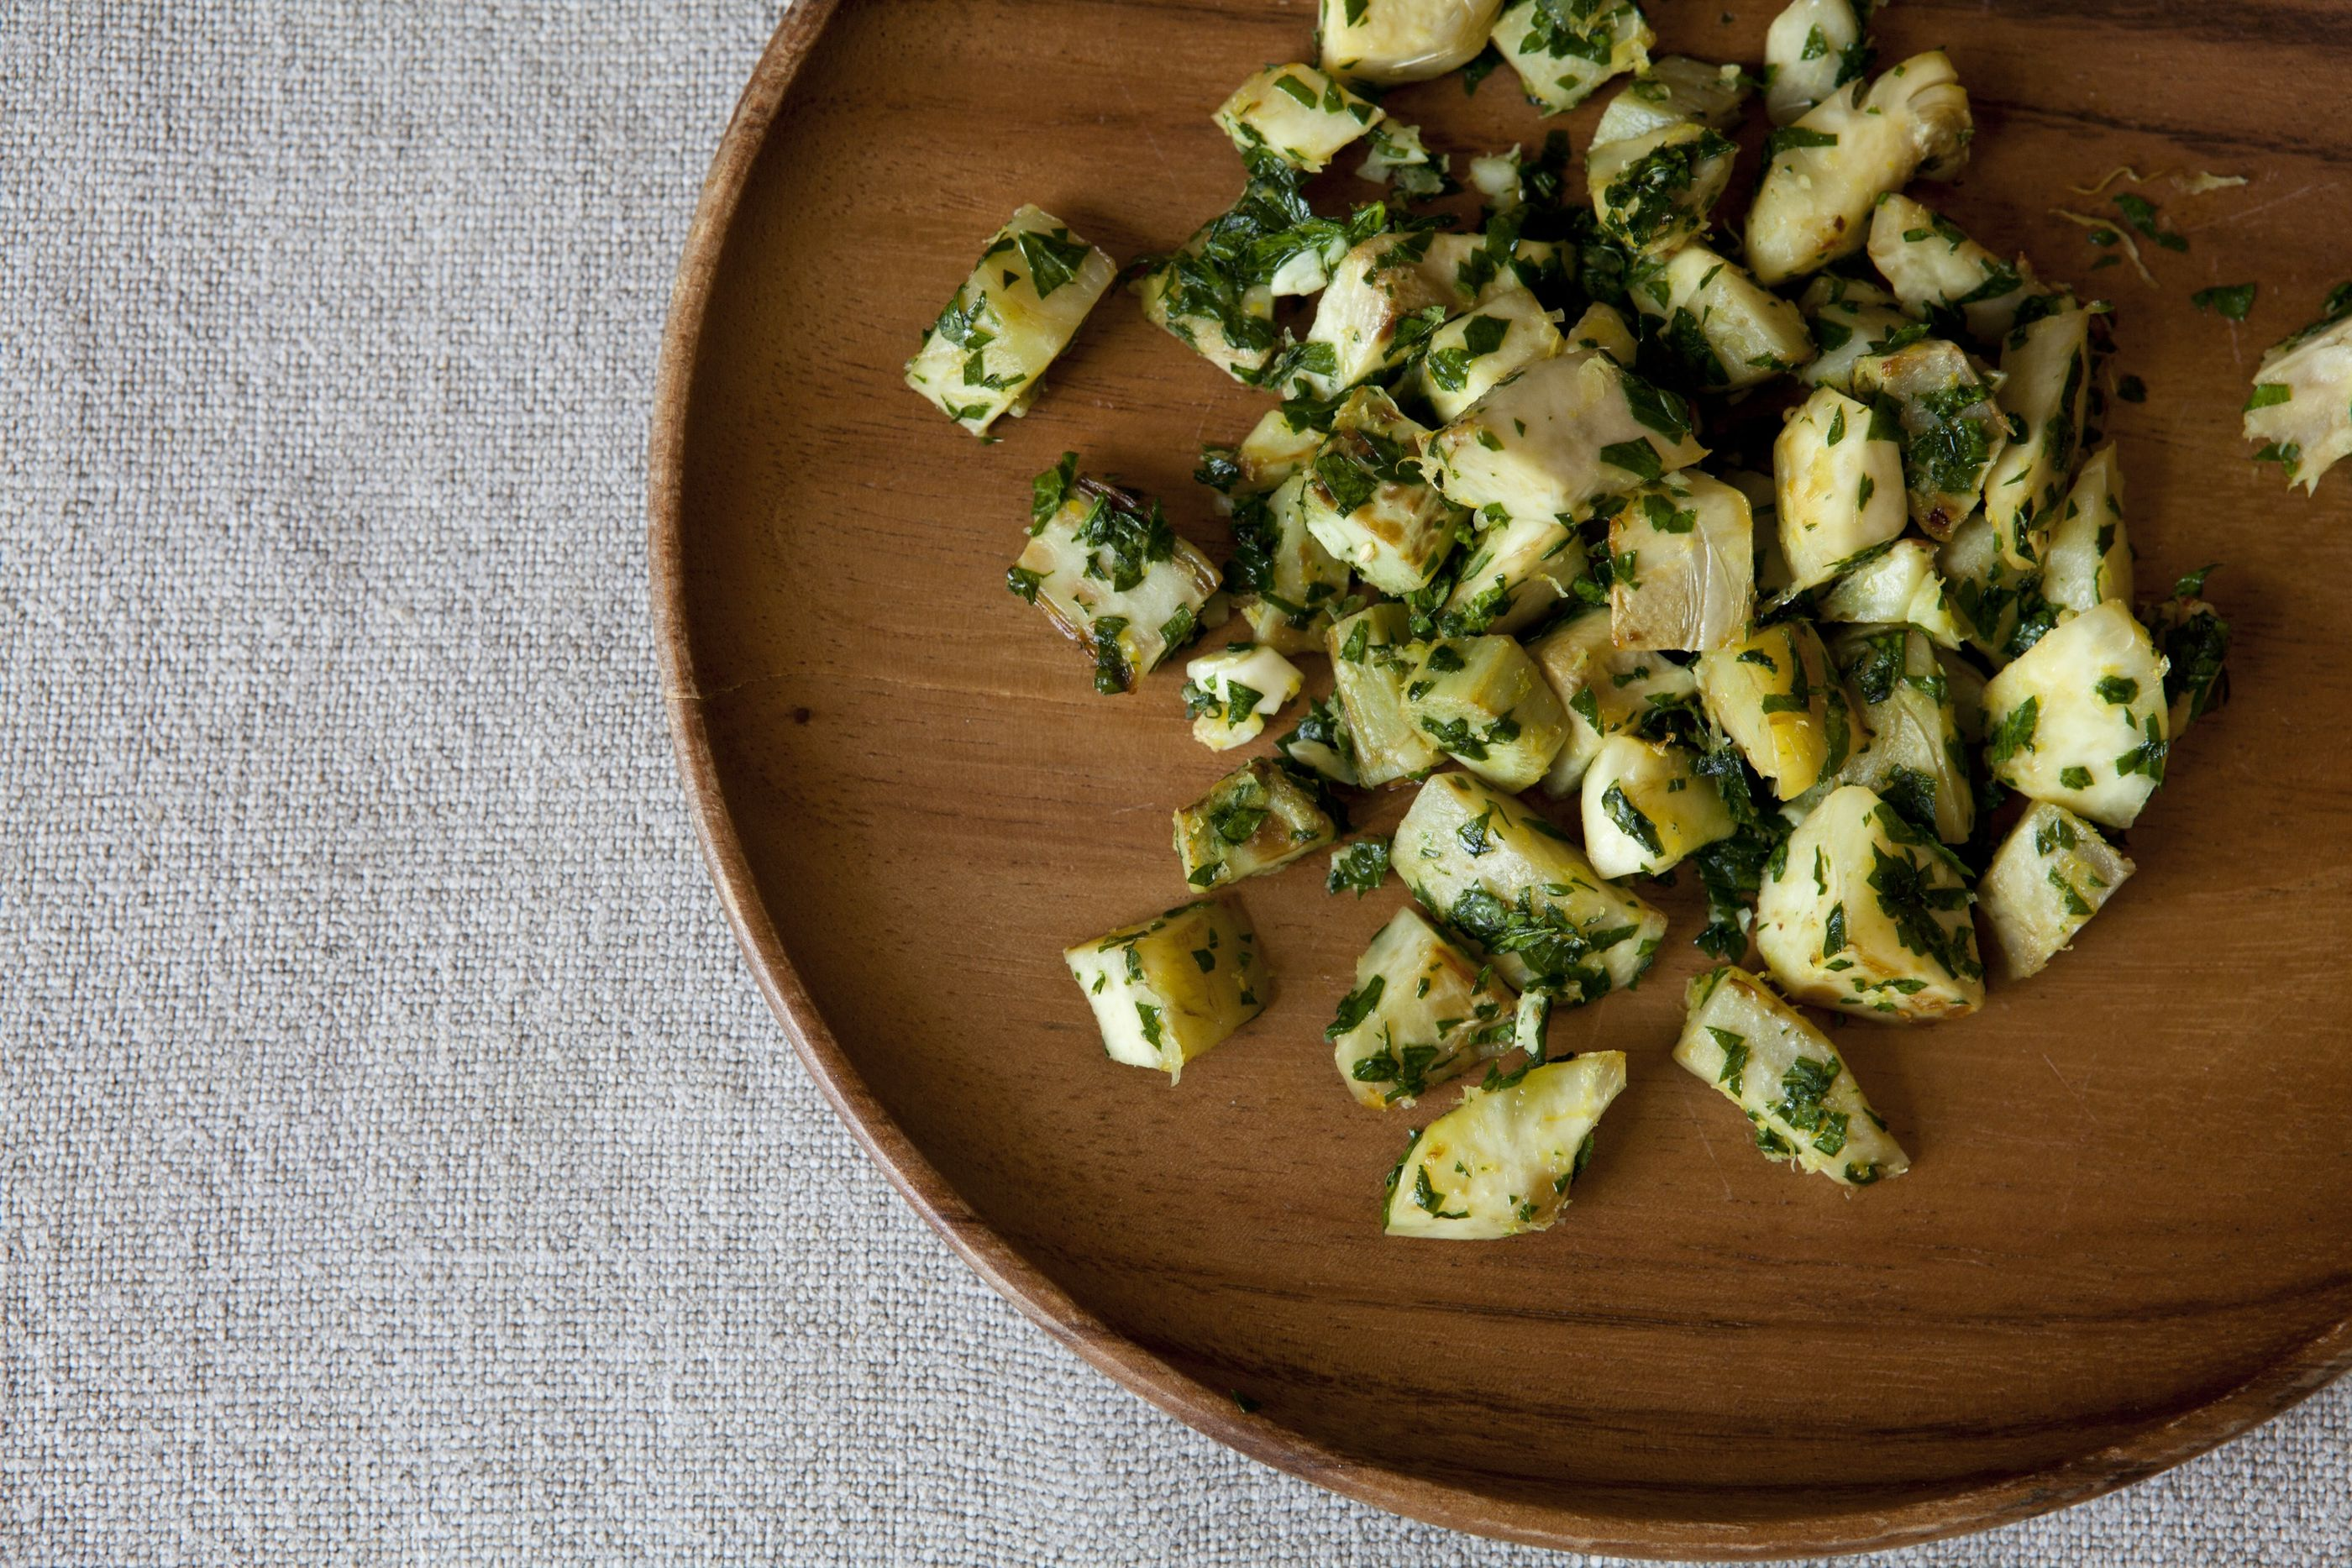 Artichokes with Pesto on Food52